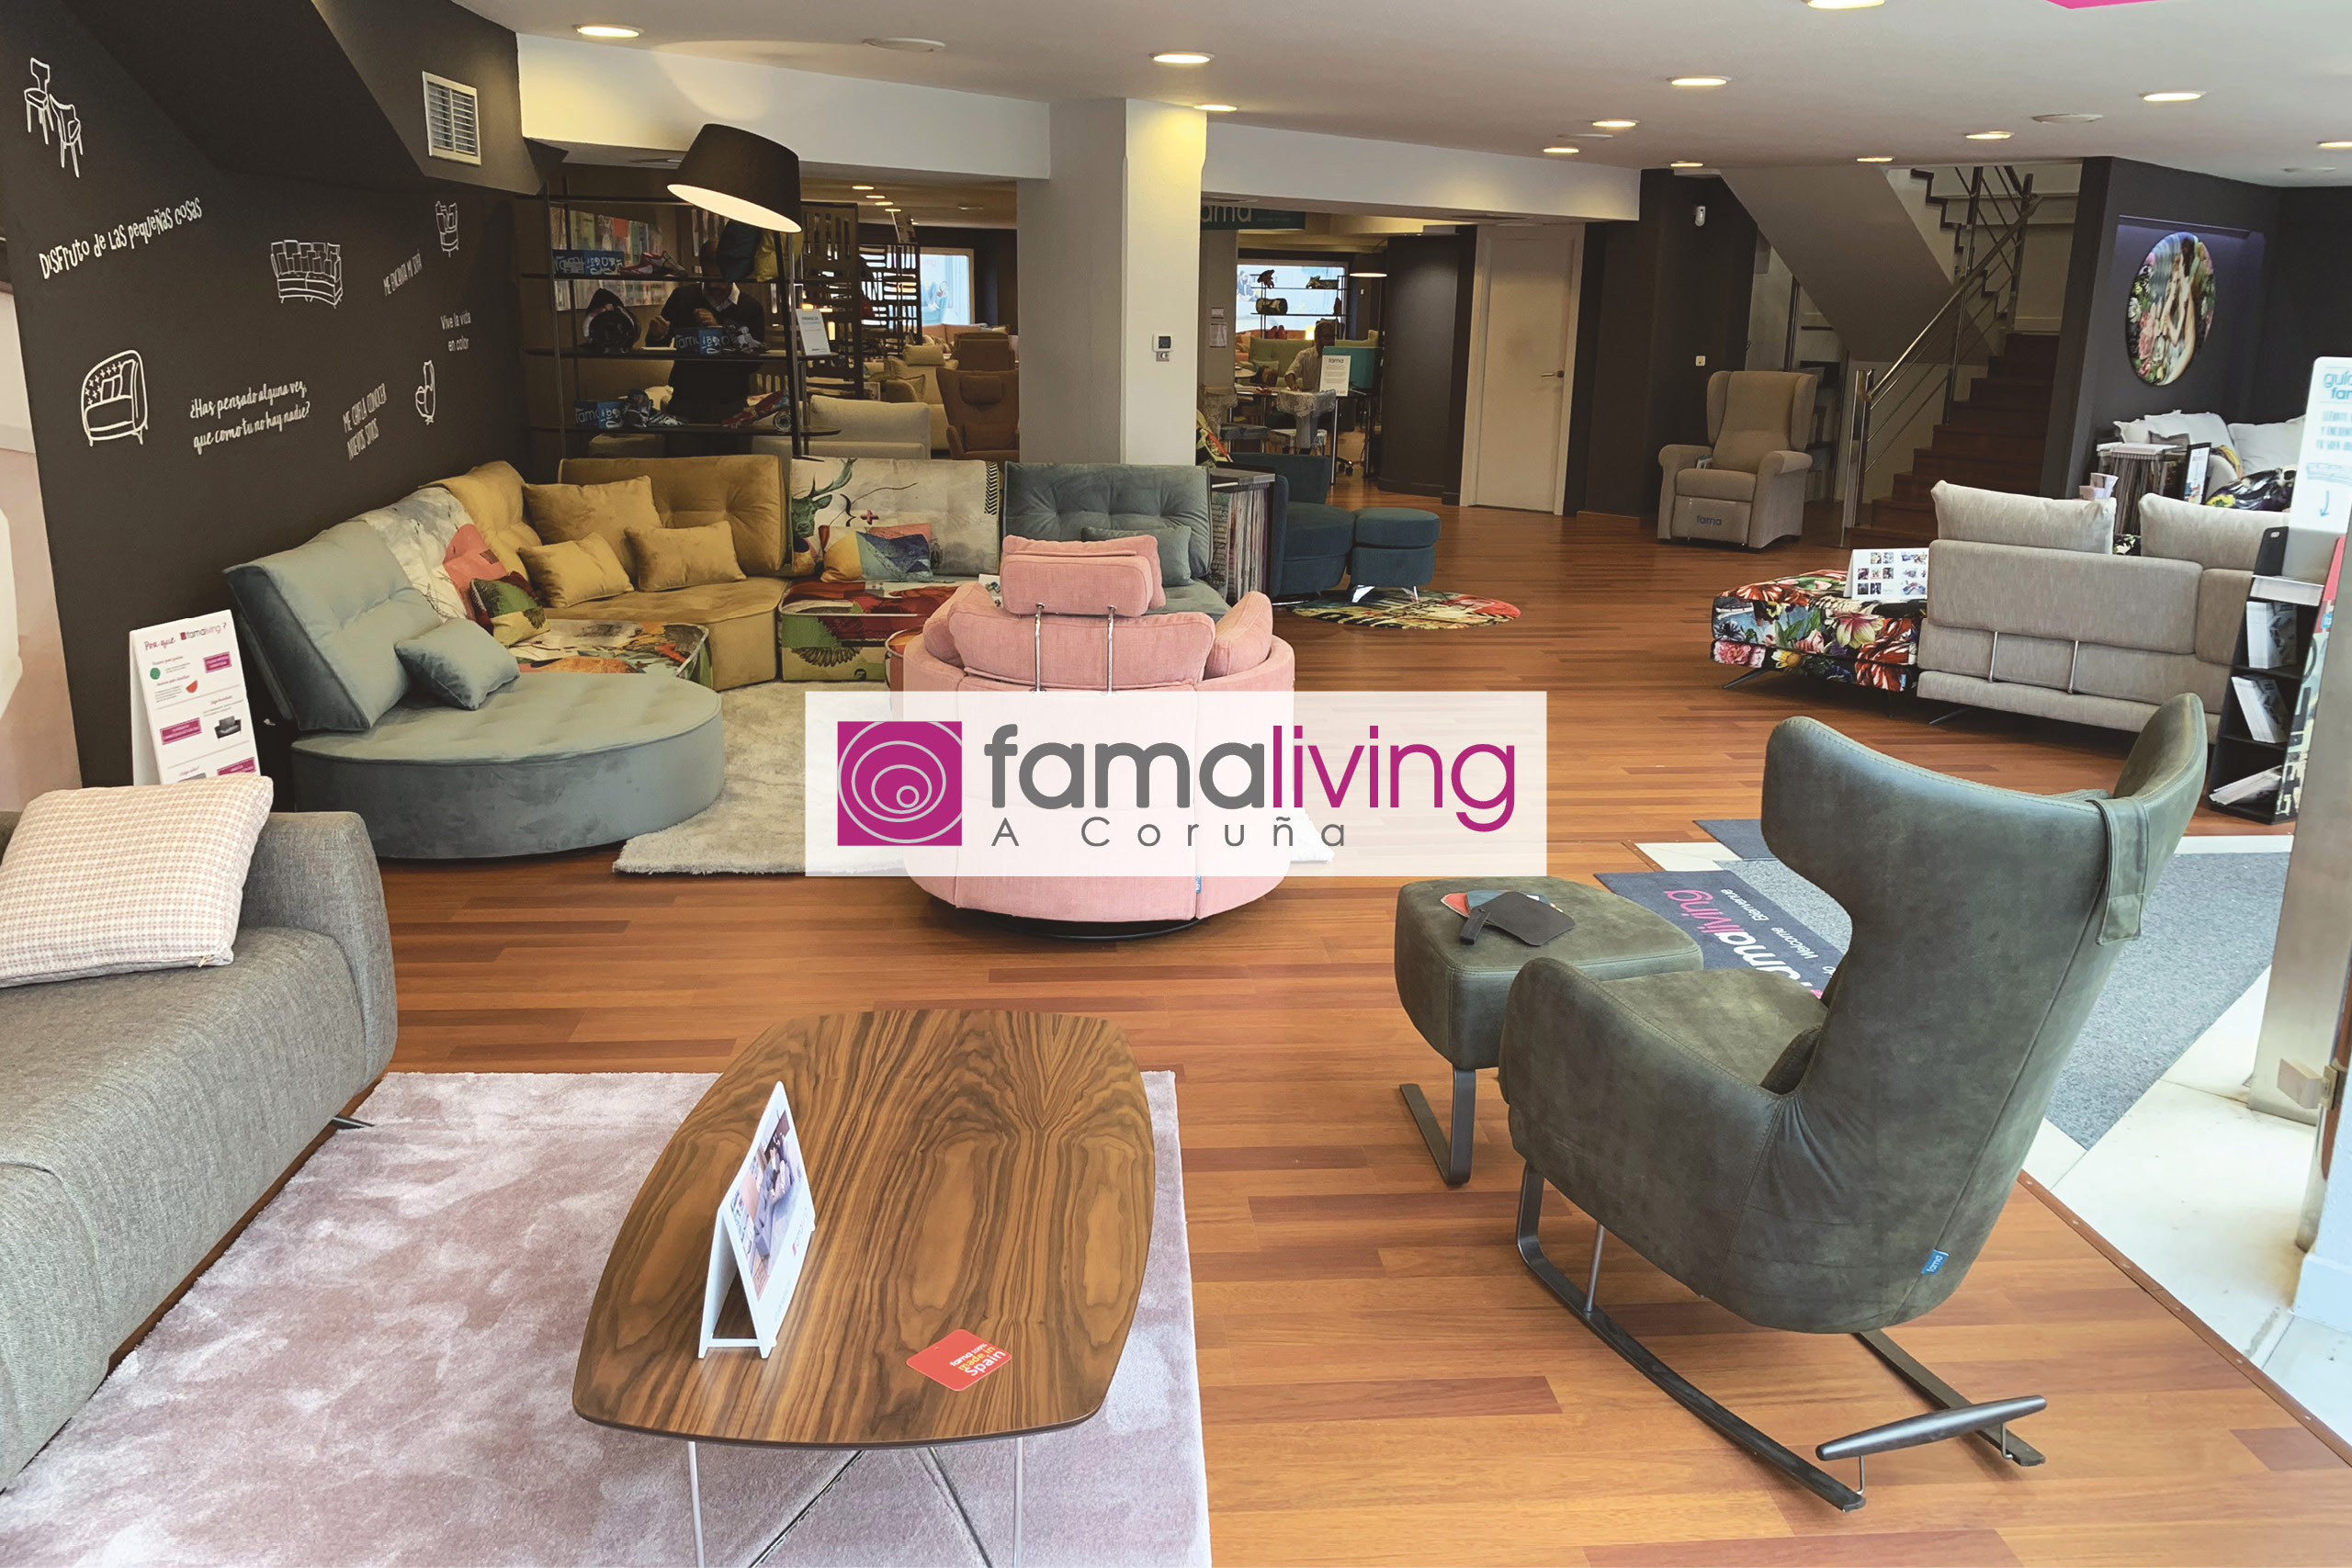 https://www.famaliving.com/acoruna-en